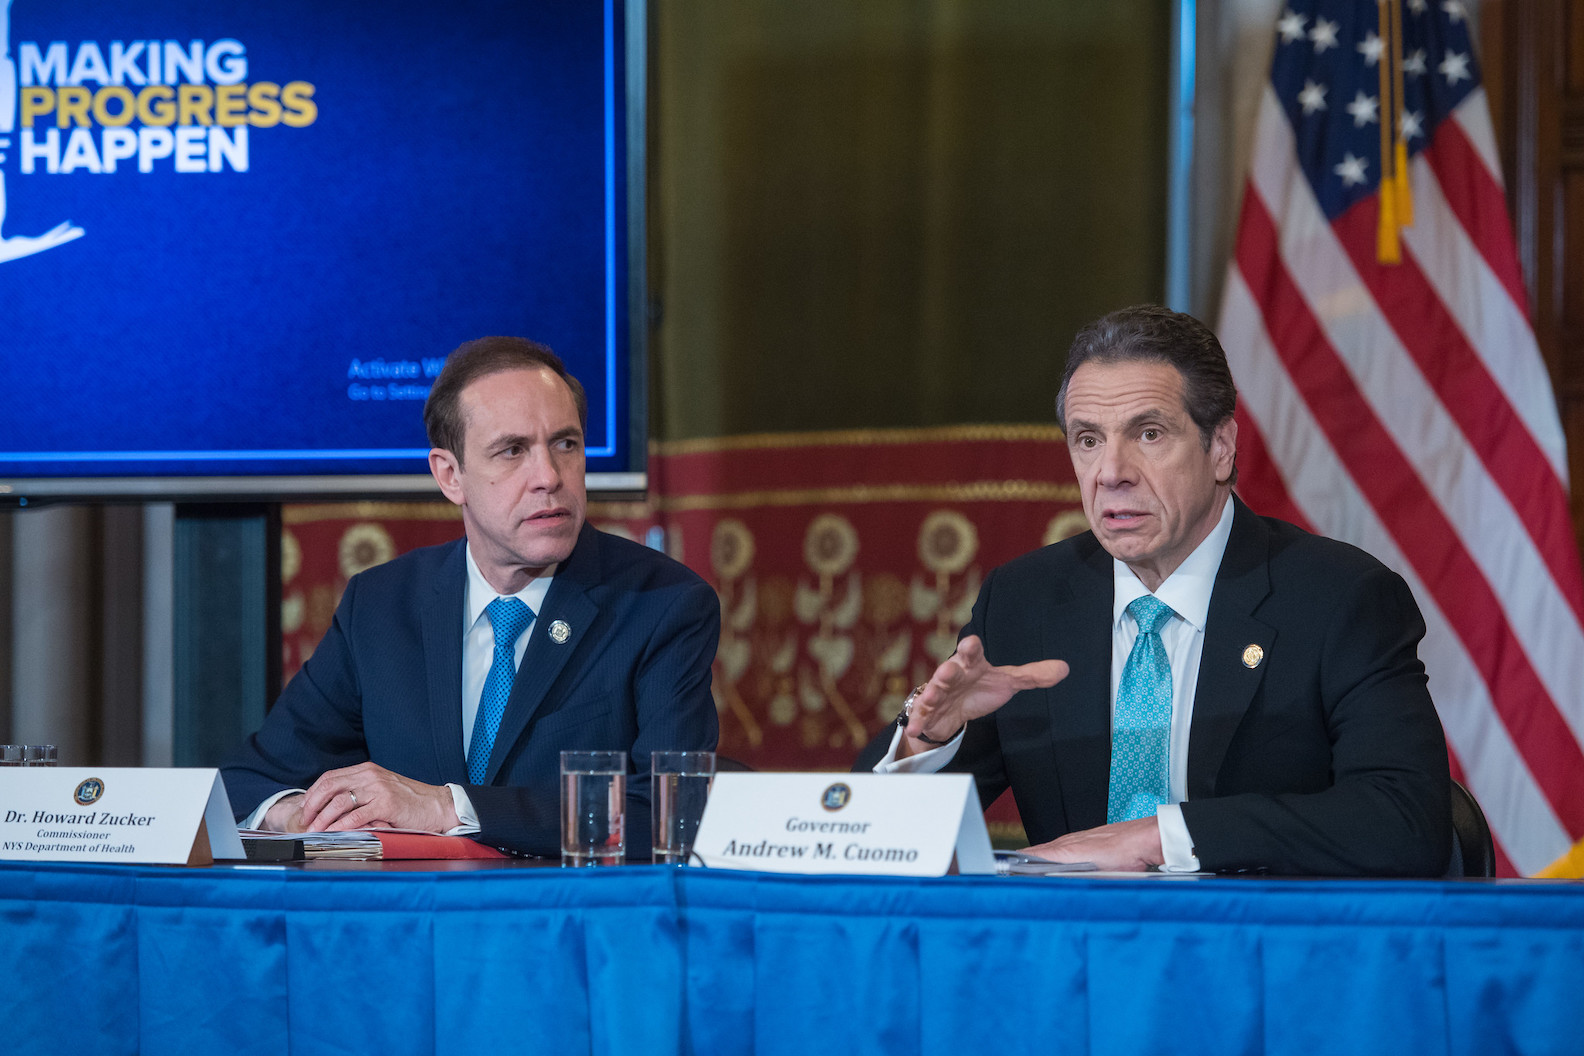 Dr. Howard Zucker and Gov. Andrew Cuomo appear at a recent press conference. (Photo courtesy of the Office of Gov. Andrew M. Cuomo)